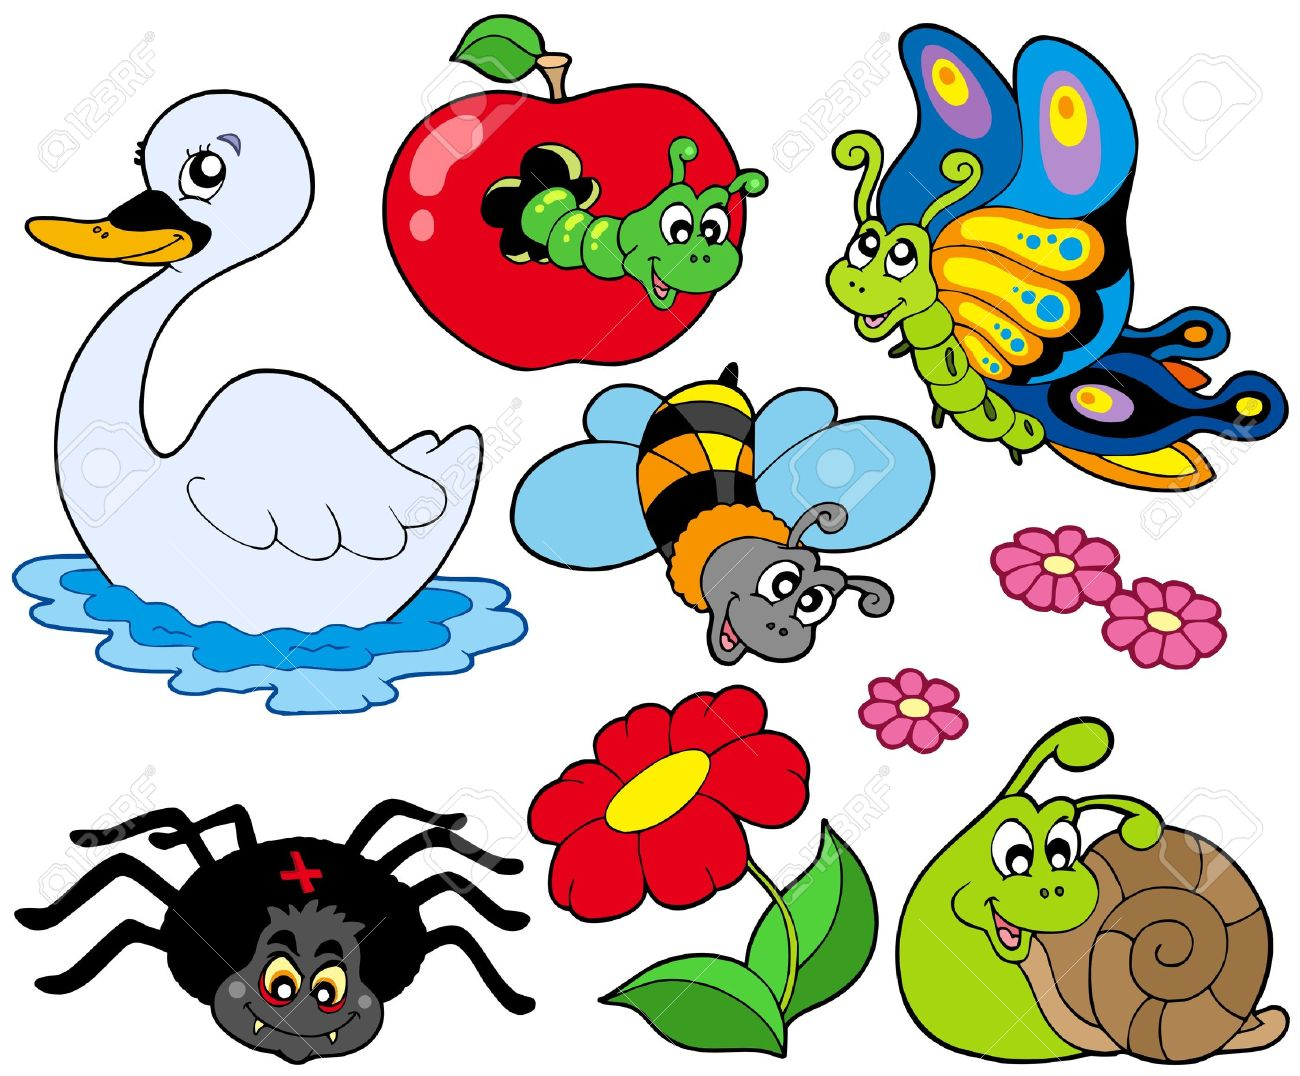 Clip art animal pictures jpg transparent library Animal pictures clip art - ClipartFest jpg transparent library